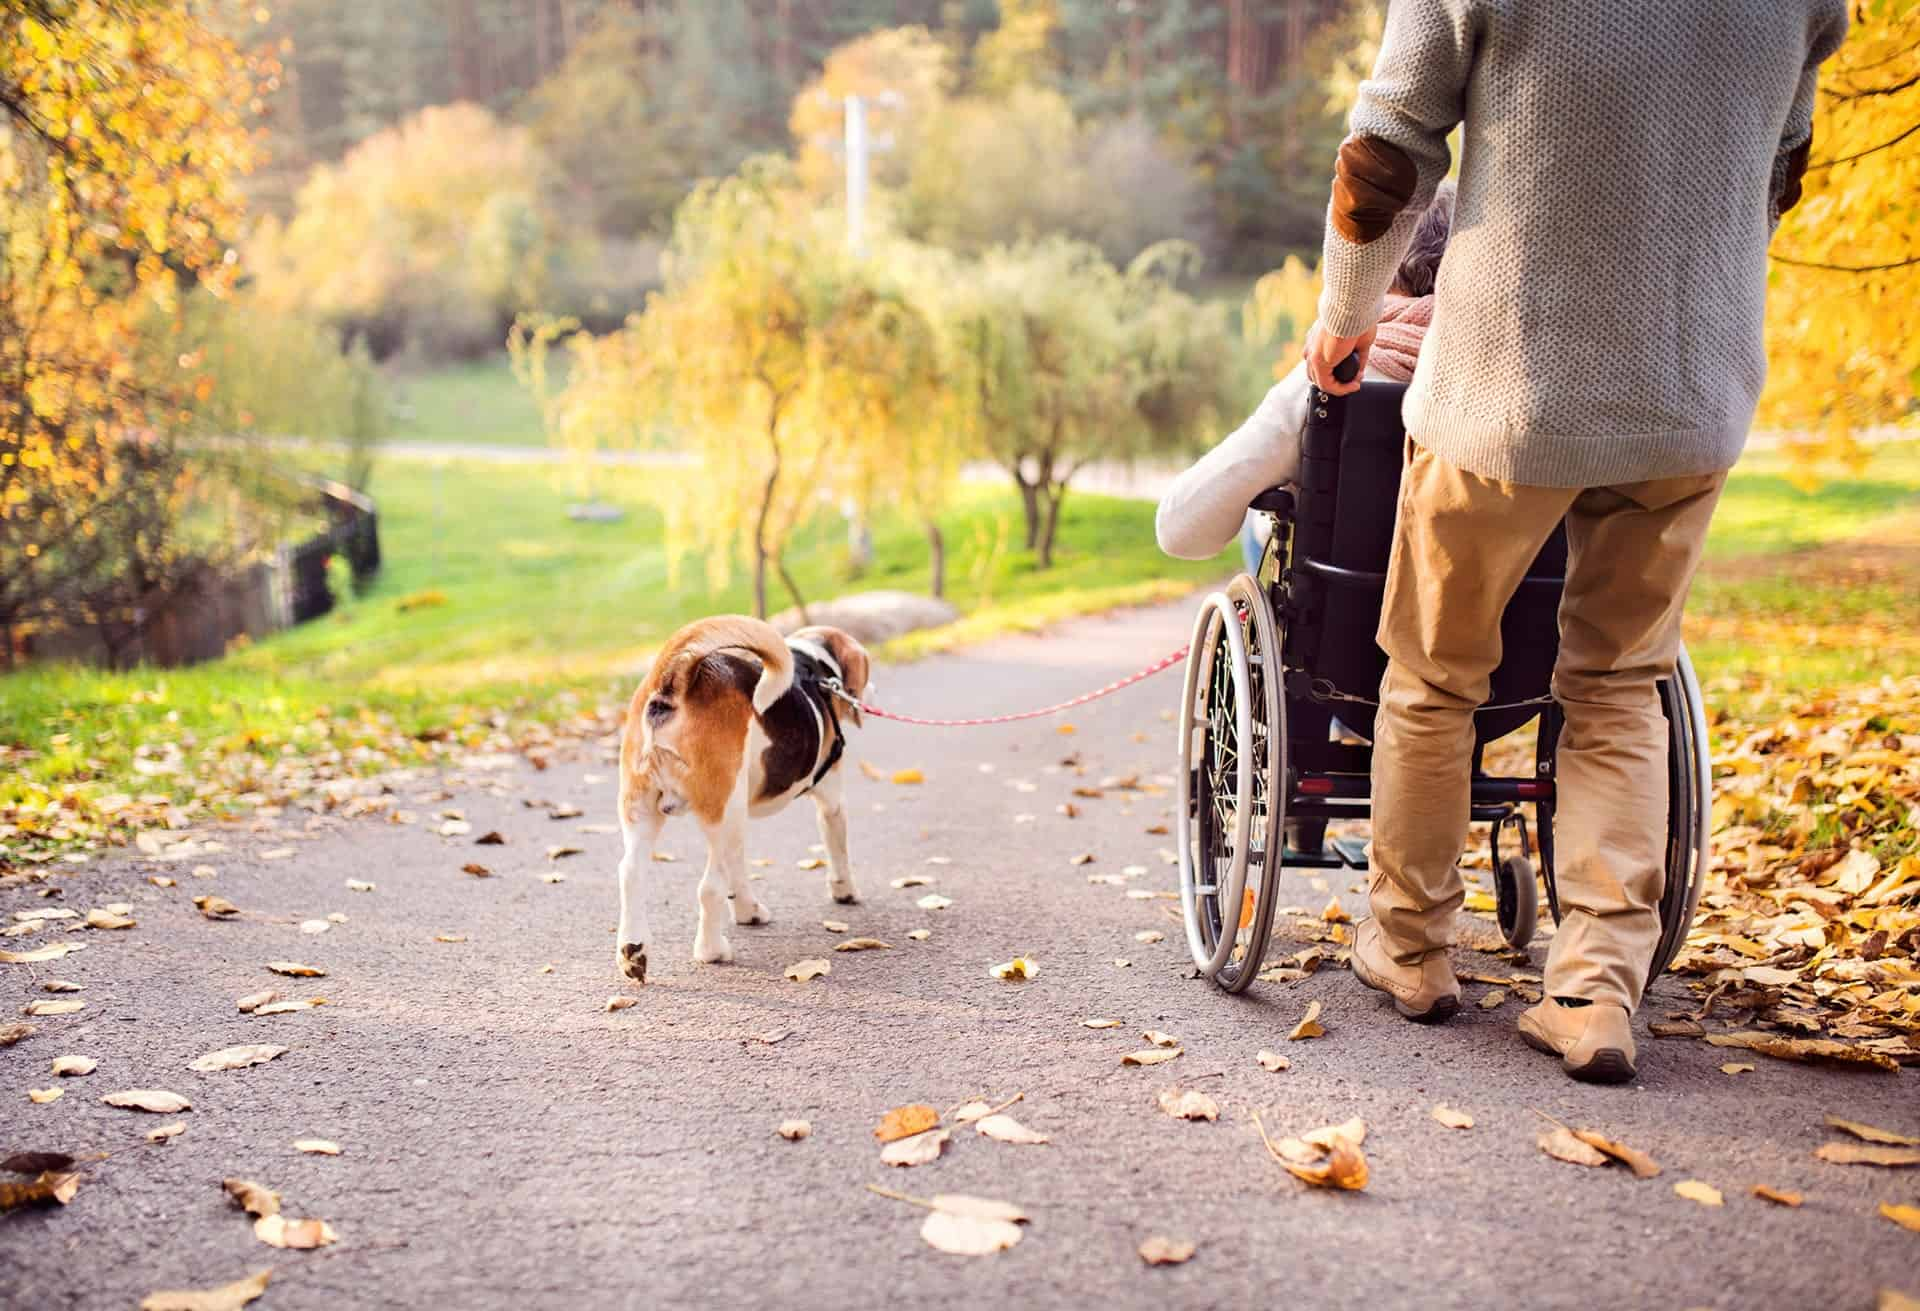 Man pushing woman in wheelchair and walking a dog on autumn path.